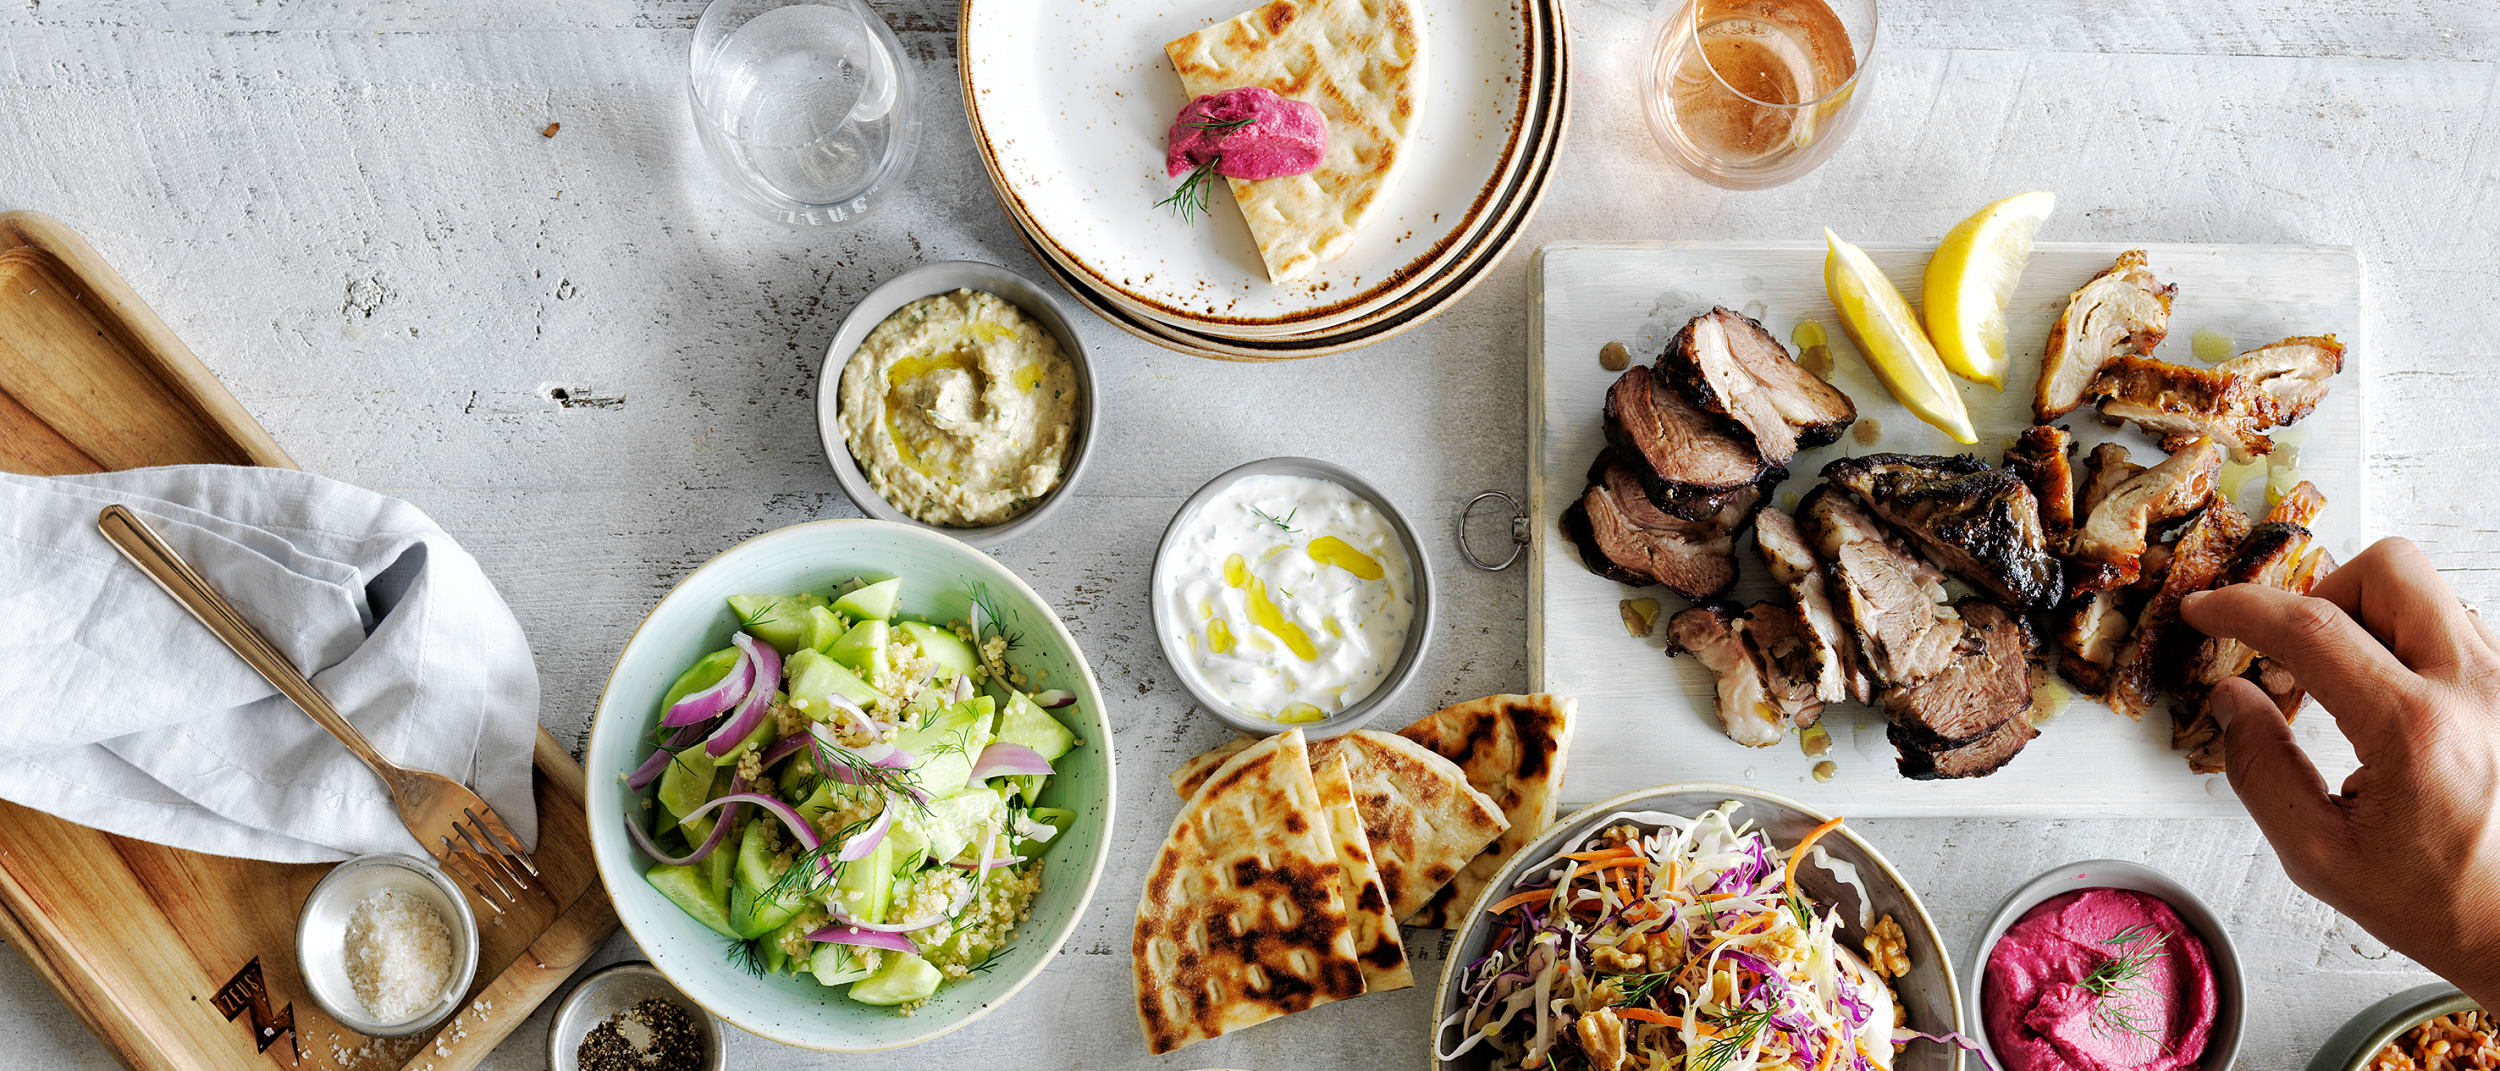 6 Brisbane feasts for the whole family